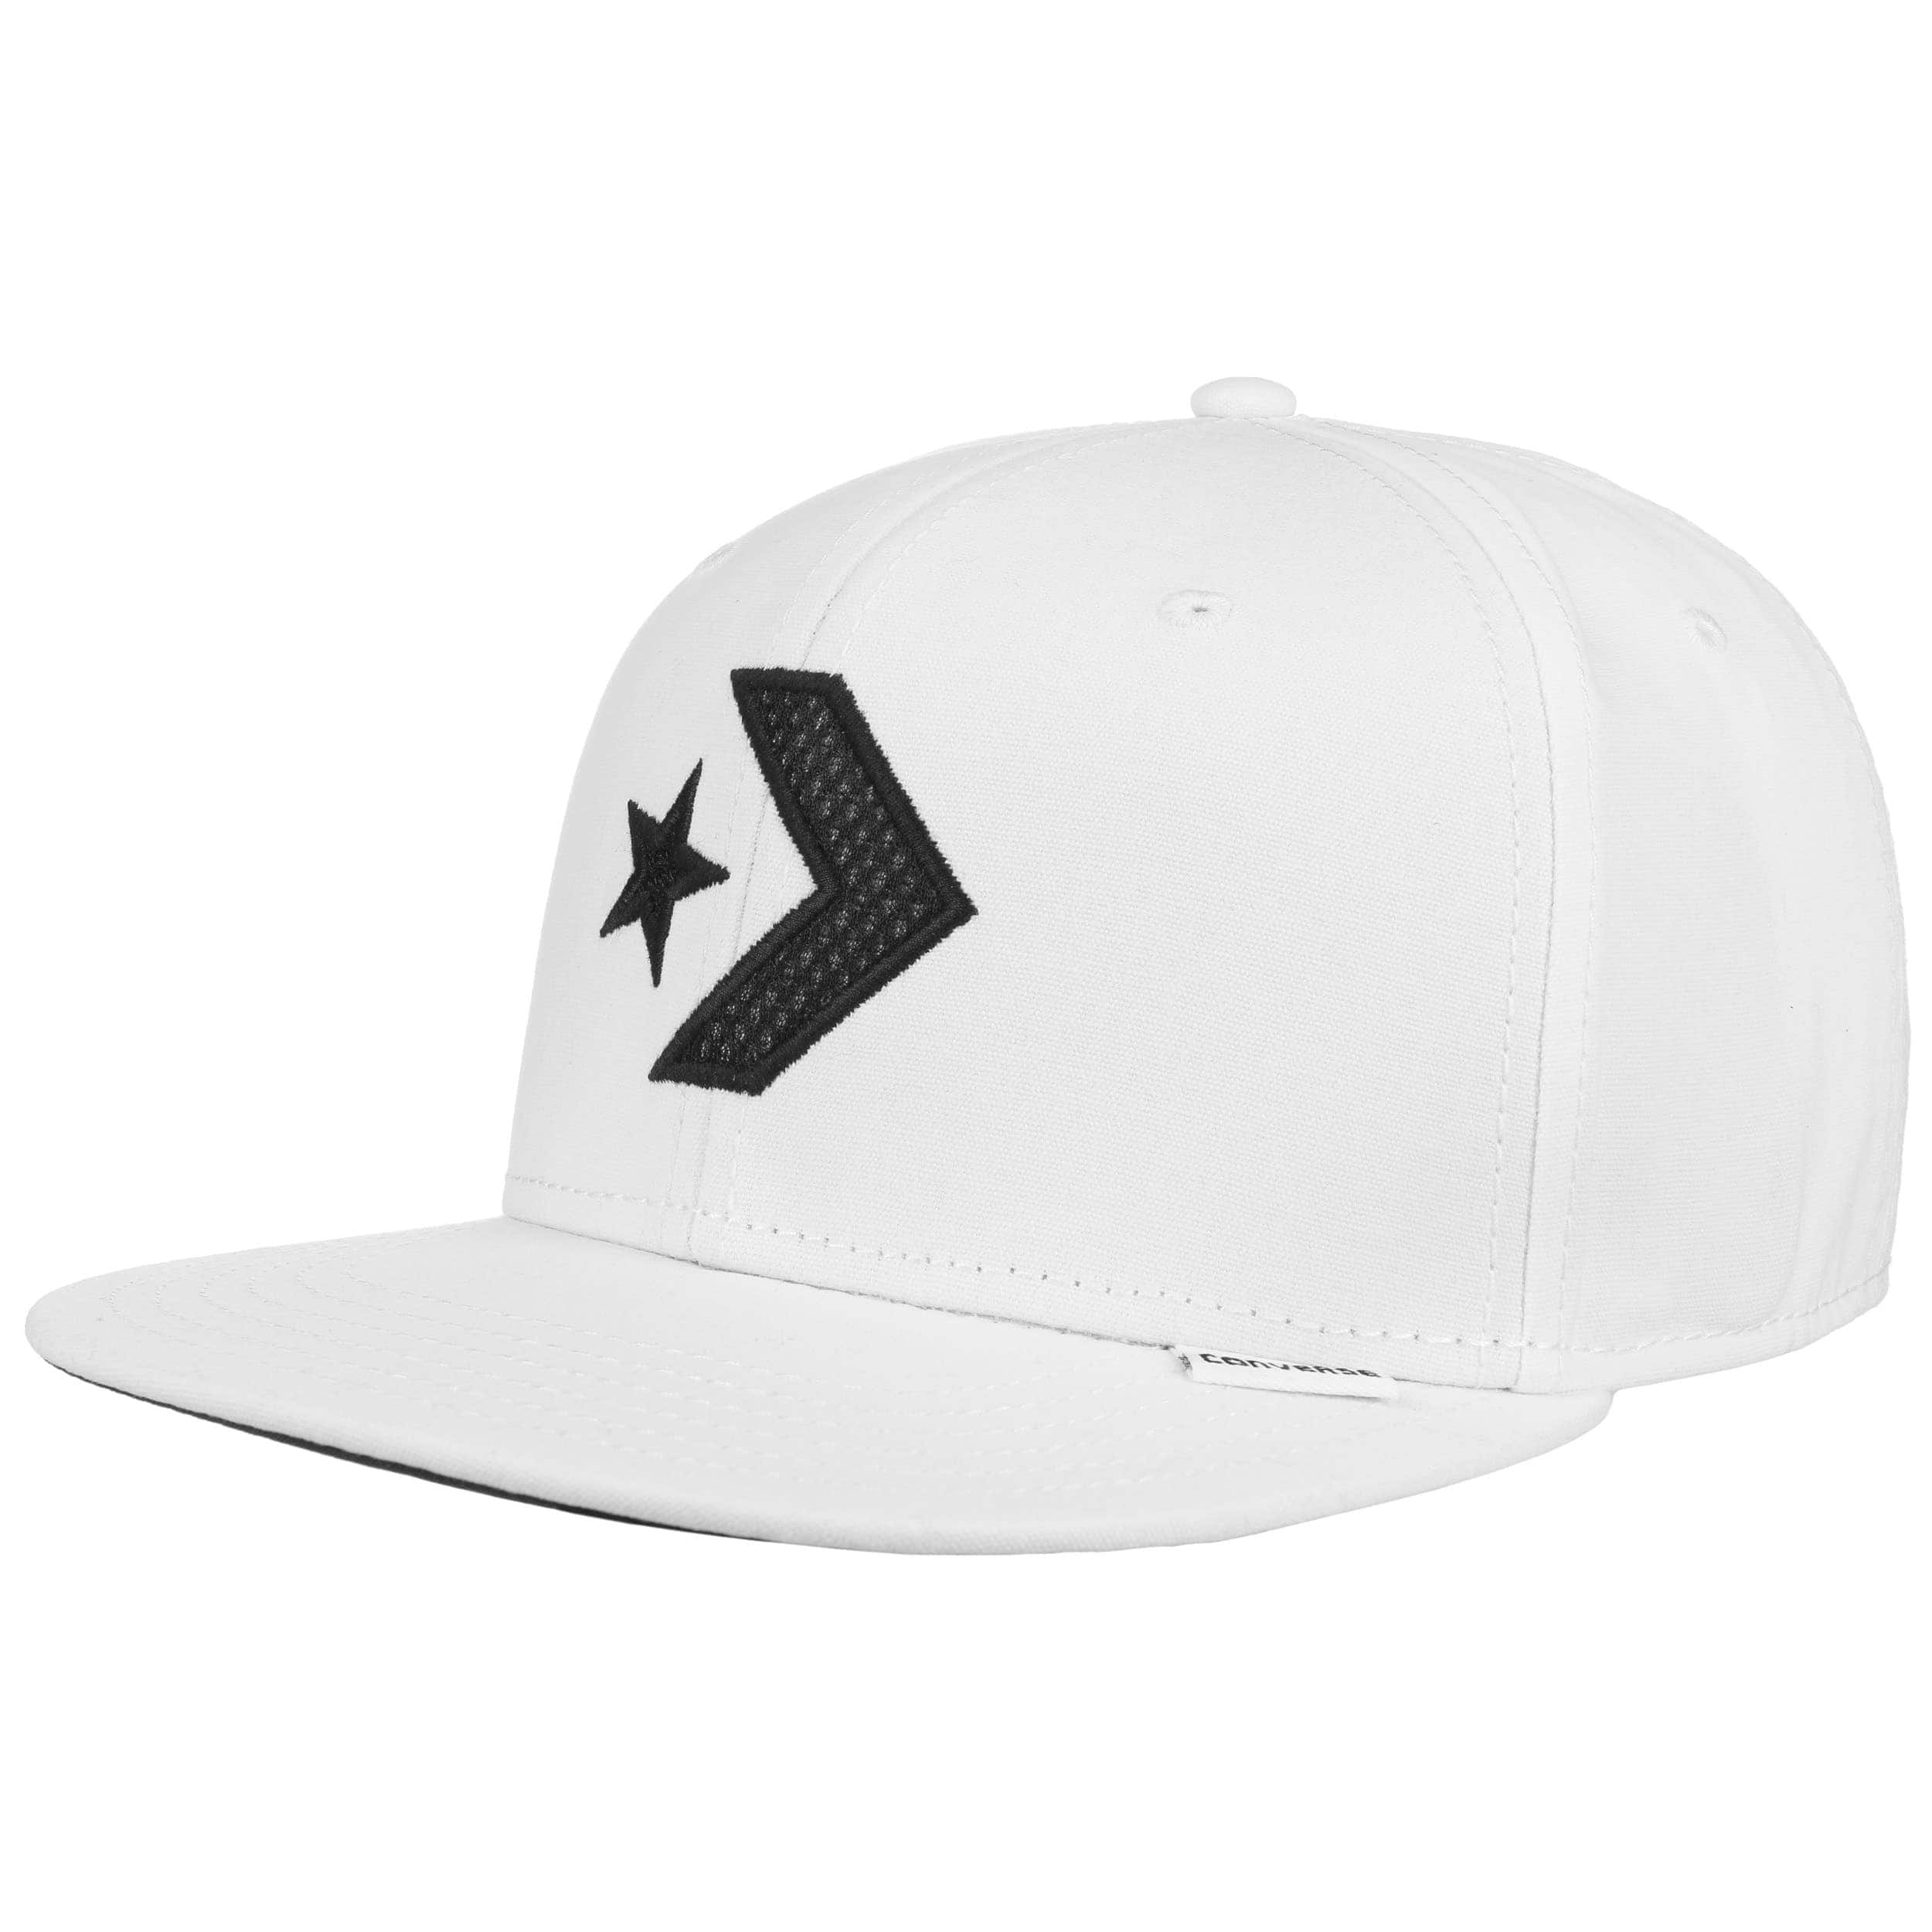 Star Chevron Snapback Cap by Converse